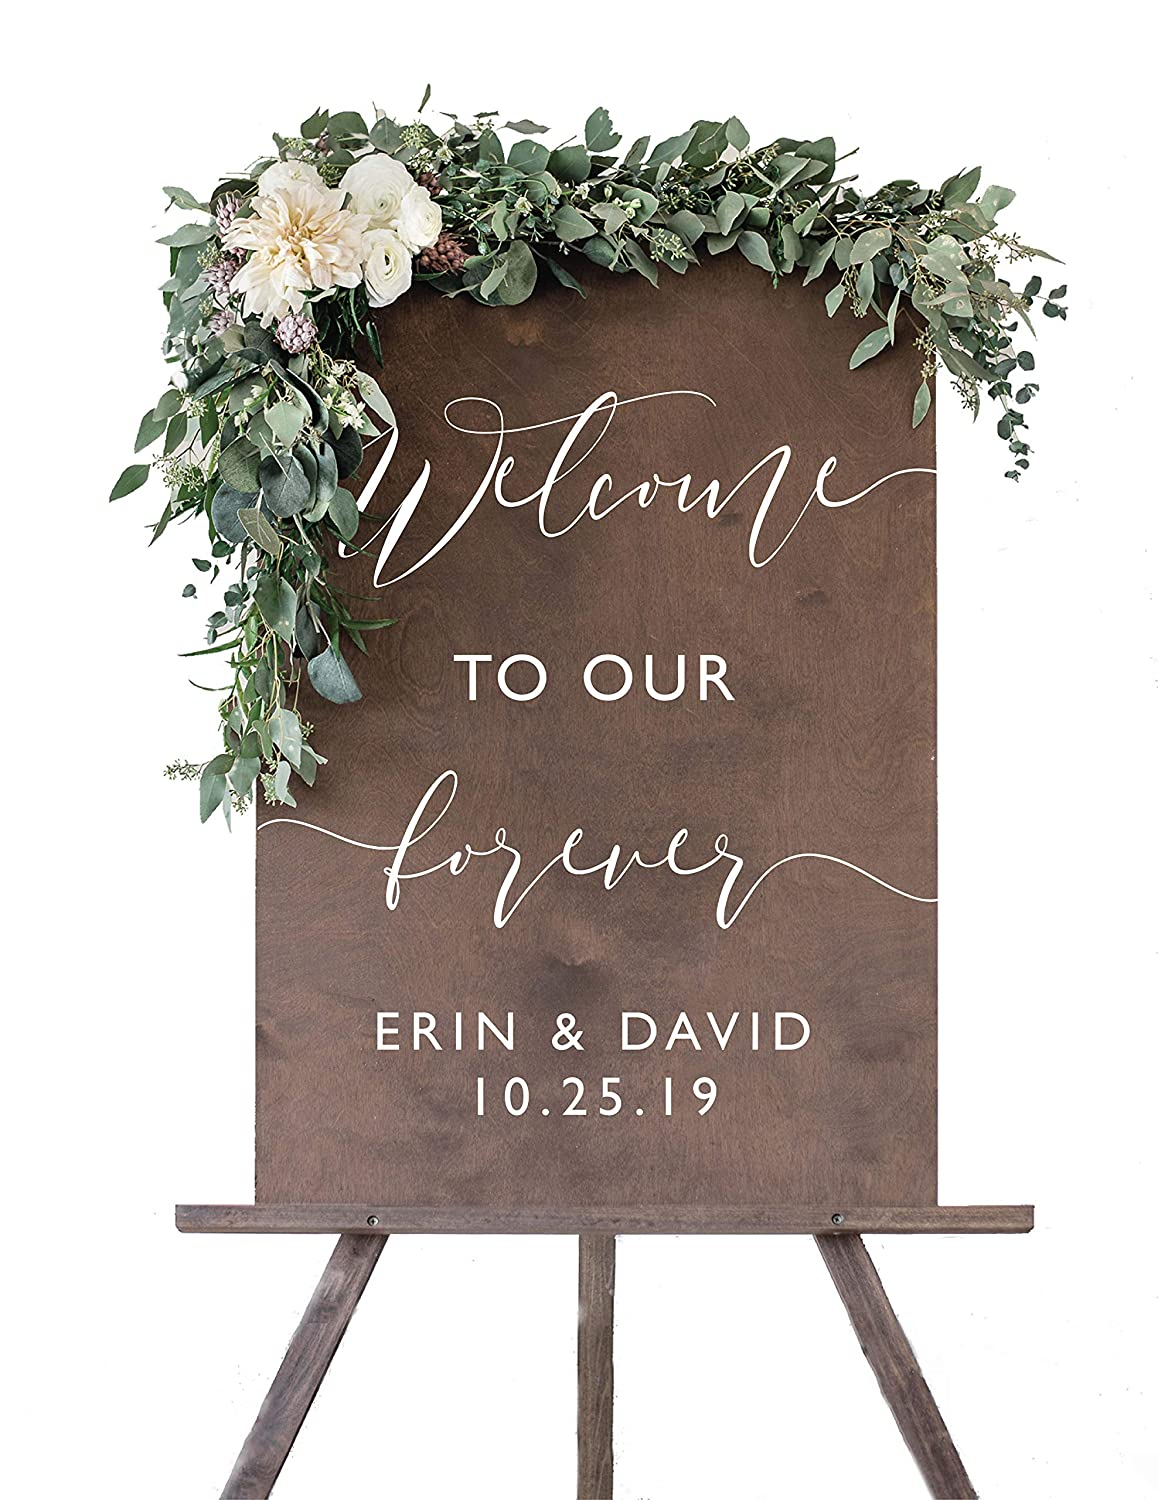 Rustic Wedding Welcome Sign  Wood Rustic Welcome to our Forever Wedding  Sign  Welcome Wedding Signs  Wooden Wedding Signs - WS-8